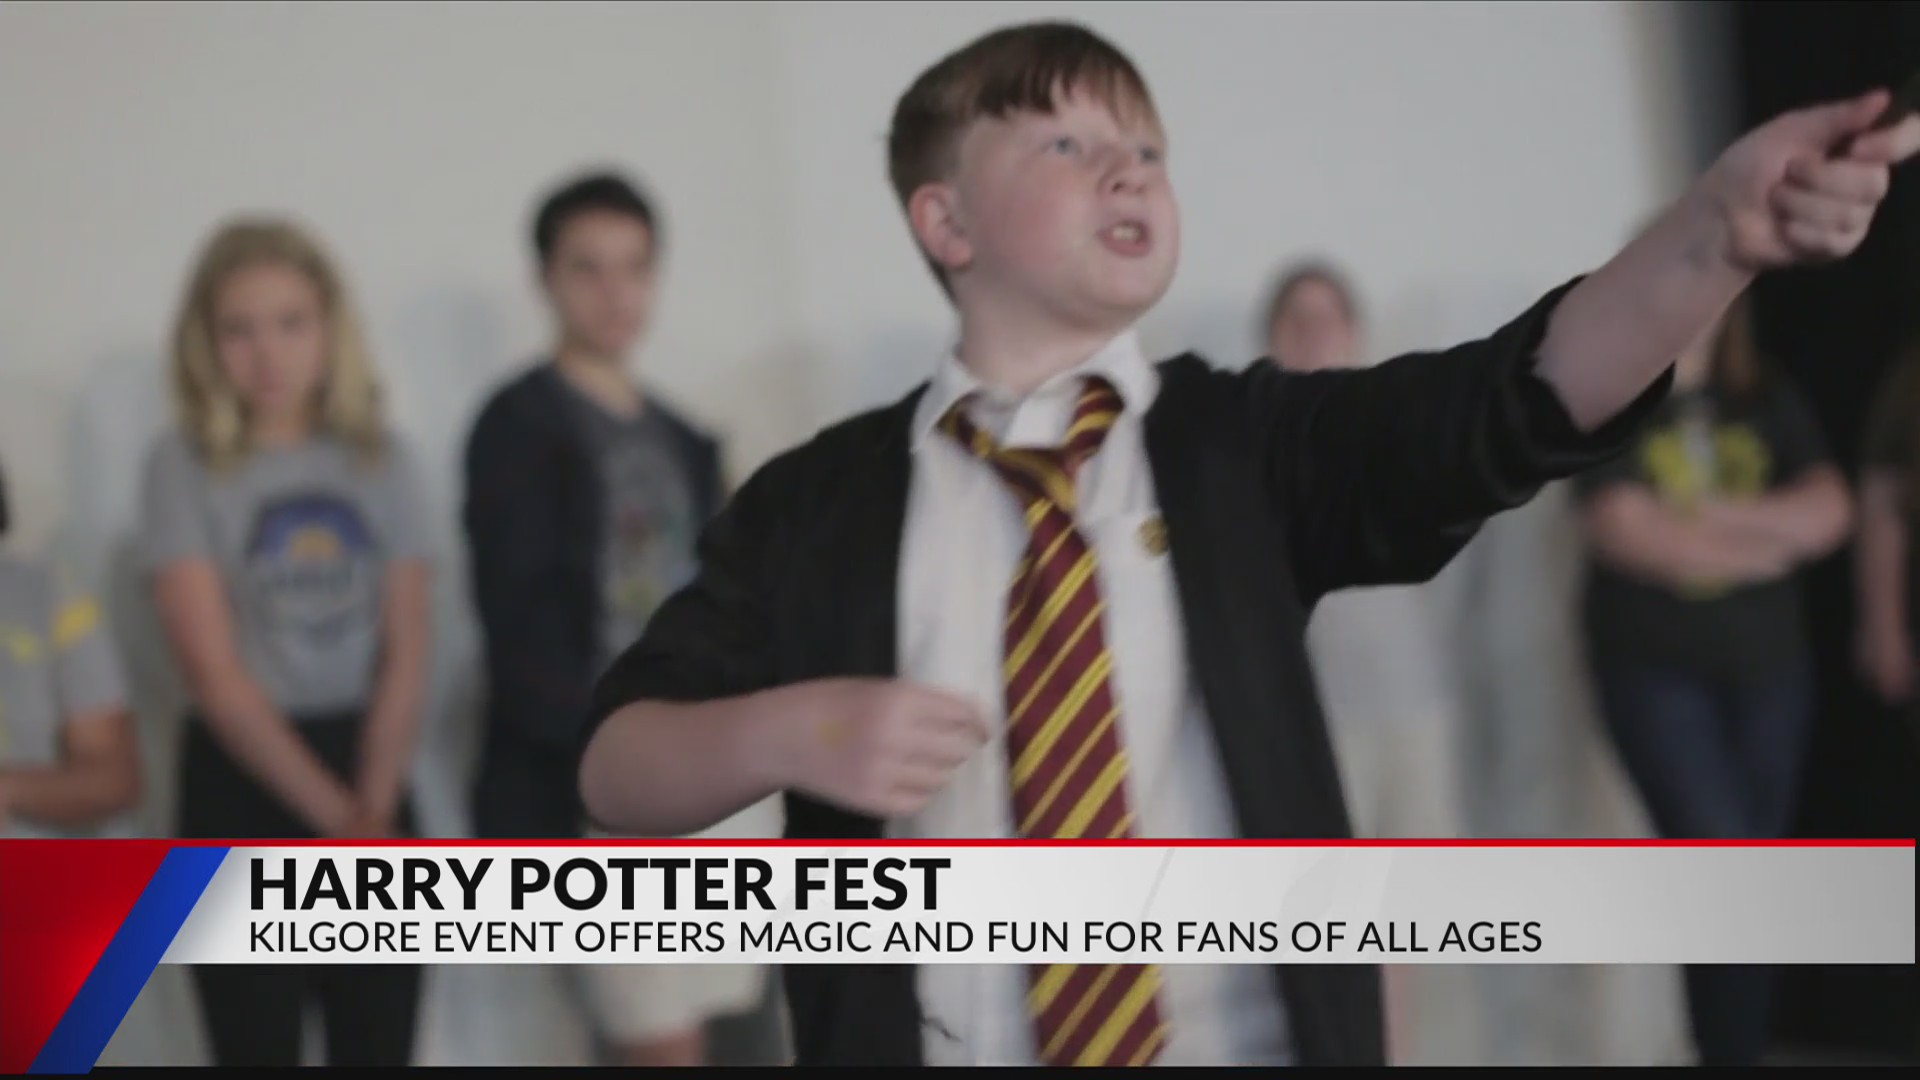 Kilgore offers magical time at Harry Potter Fest | KETK | FOX51